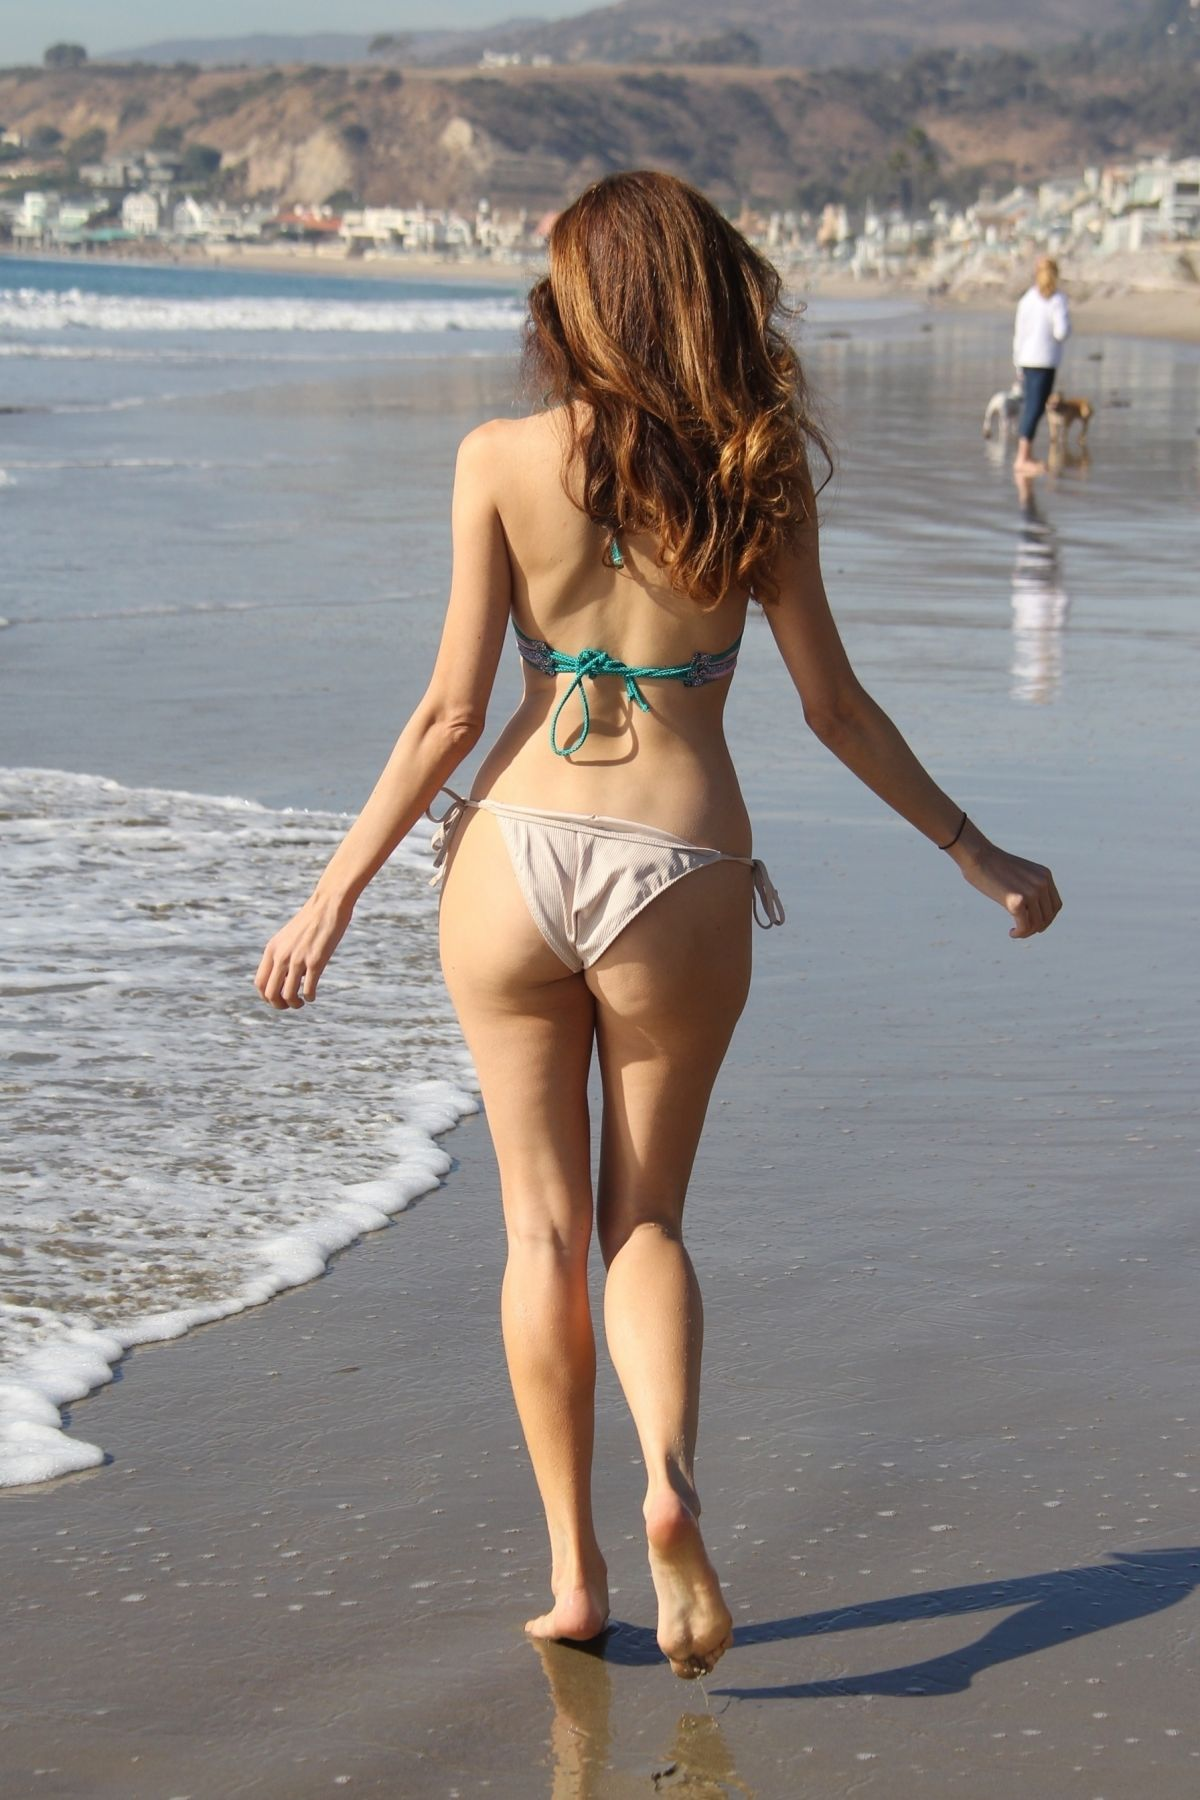 Blanca Blanco in Pink Bikini at the beach in Malibu Pic 21 of 35